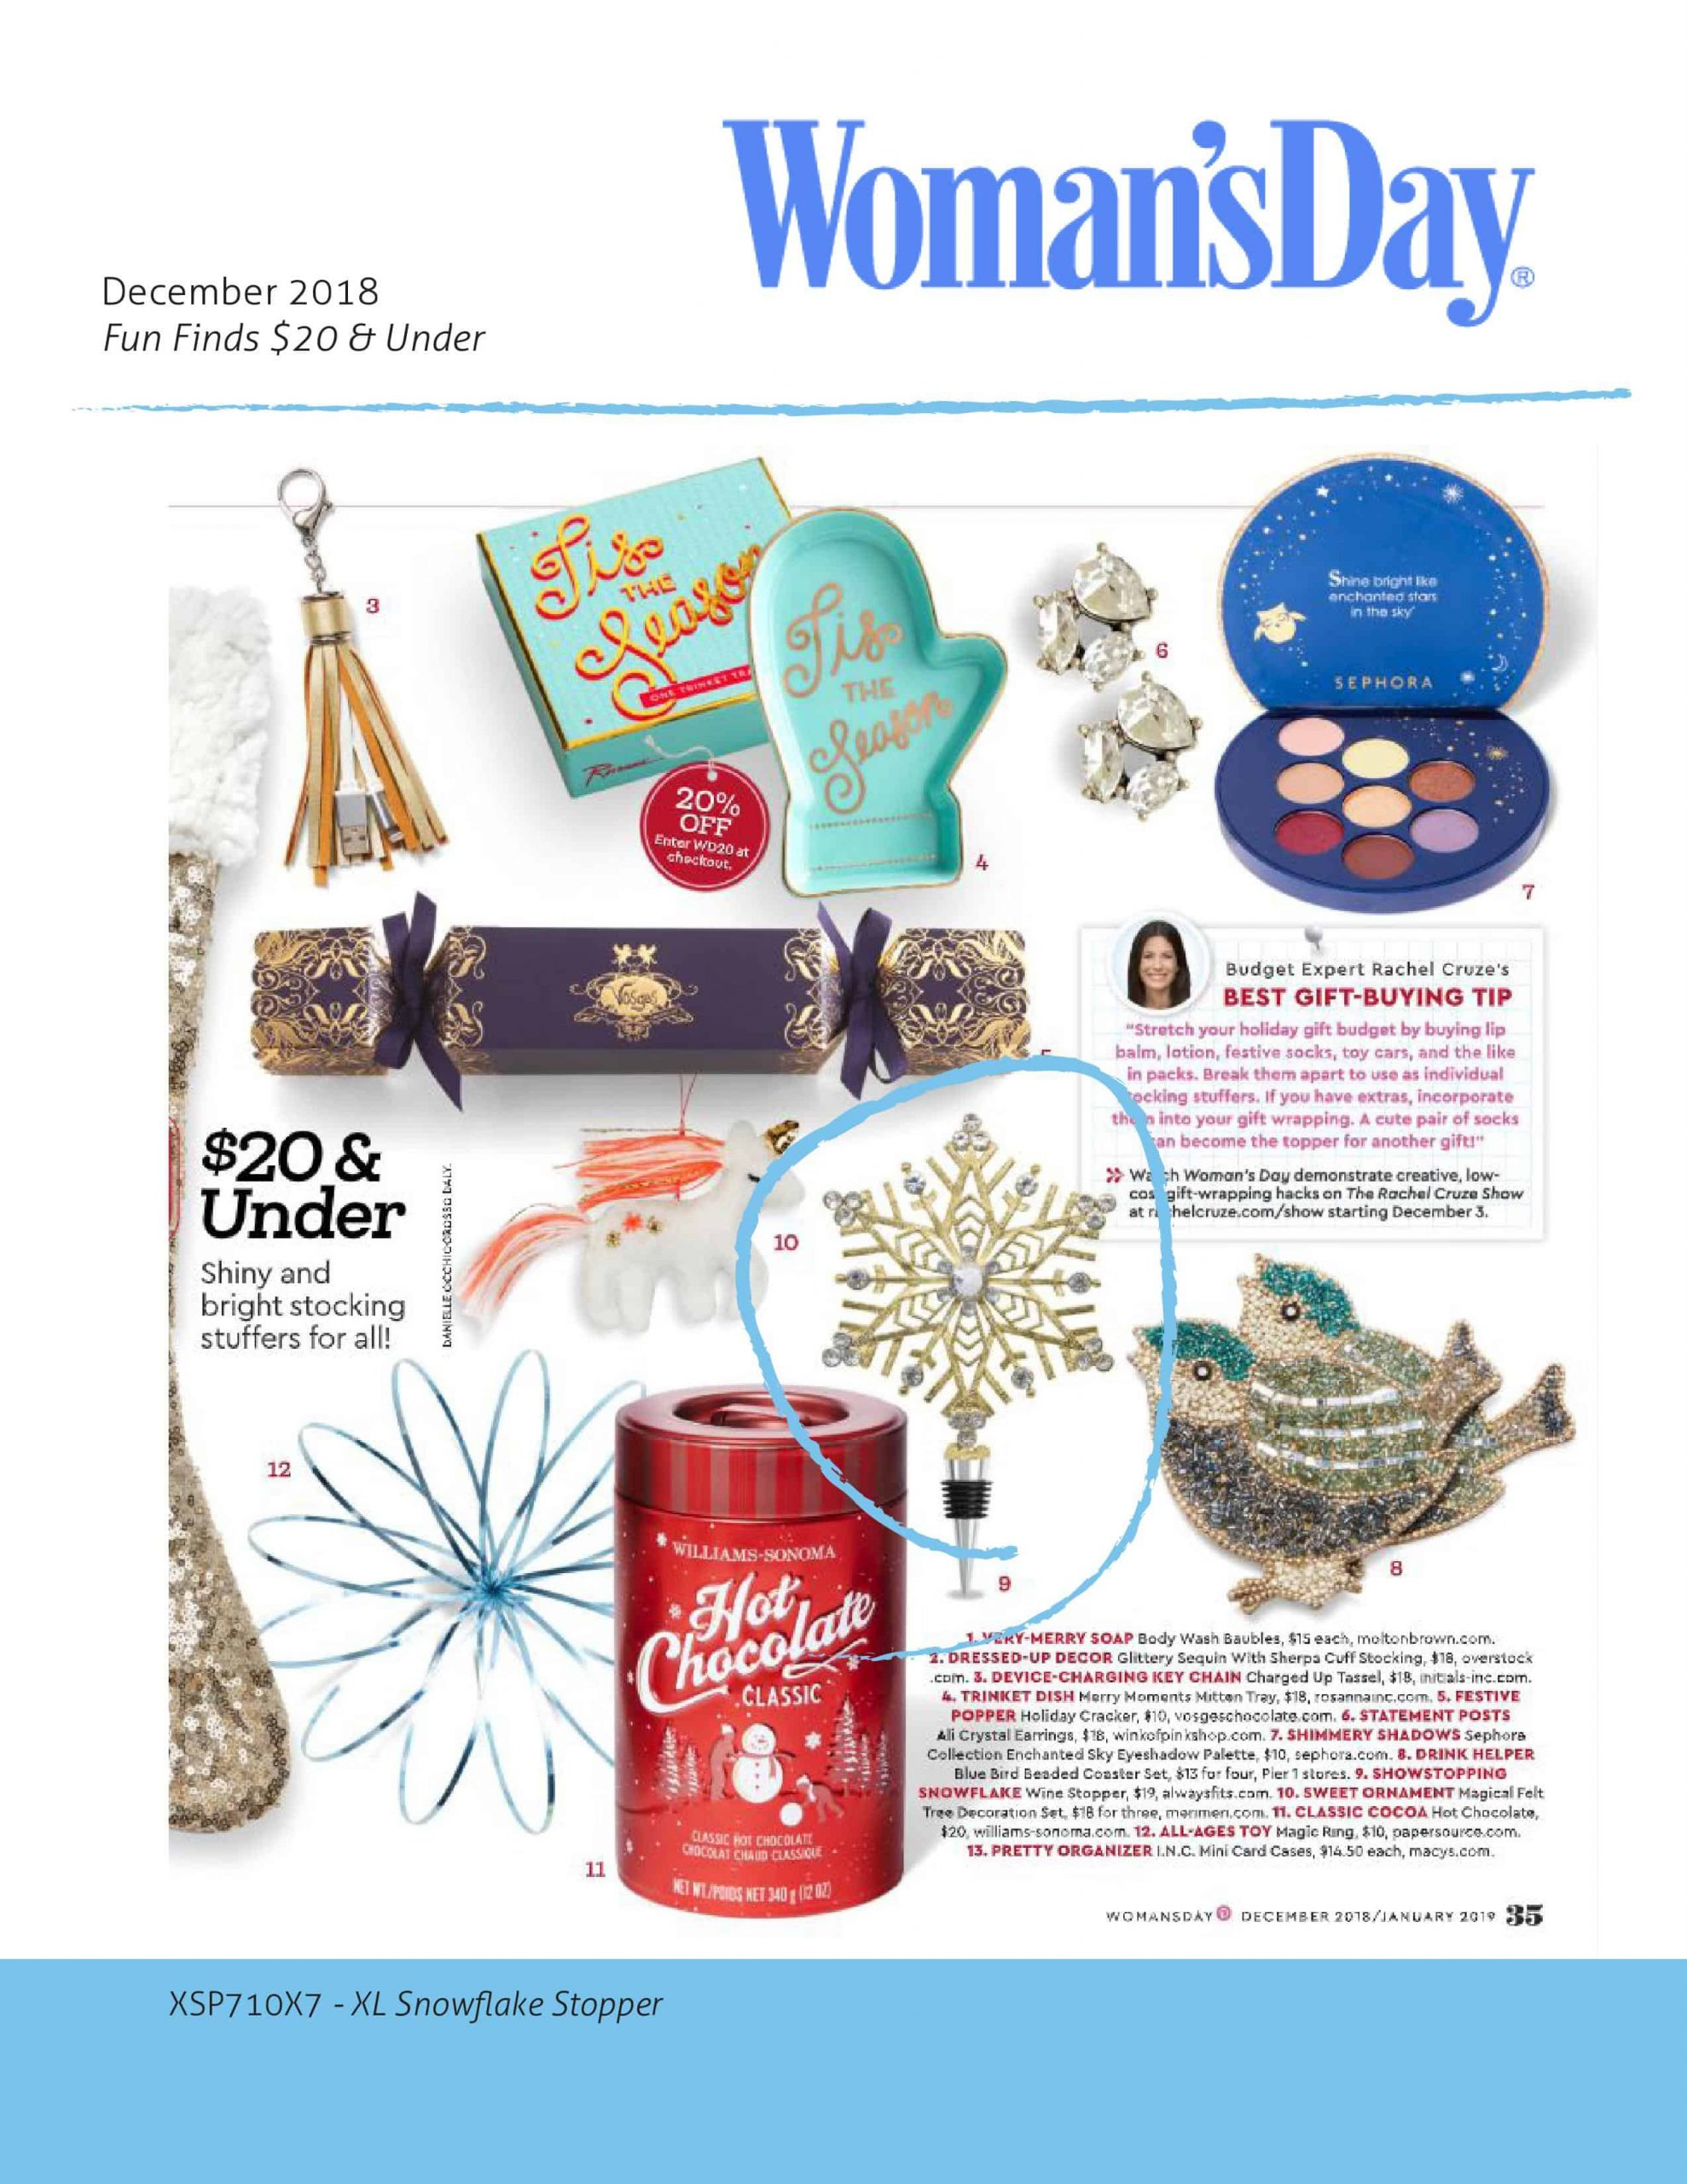 Woman's Day Featuring XL Snowflake Stopper